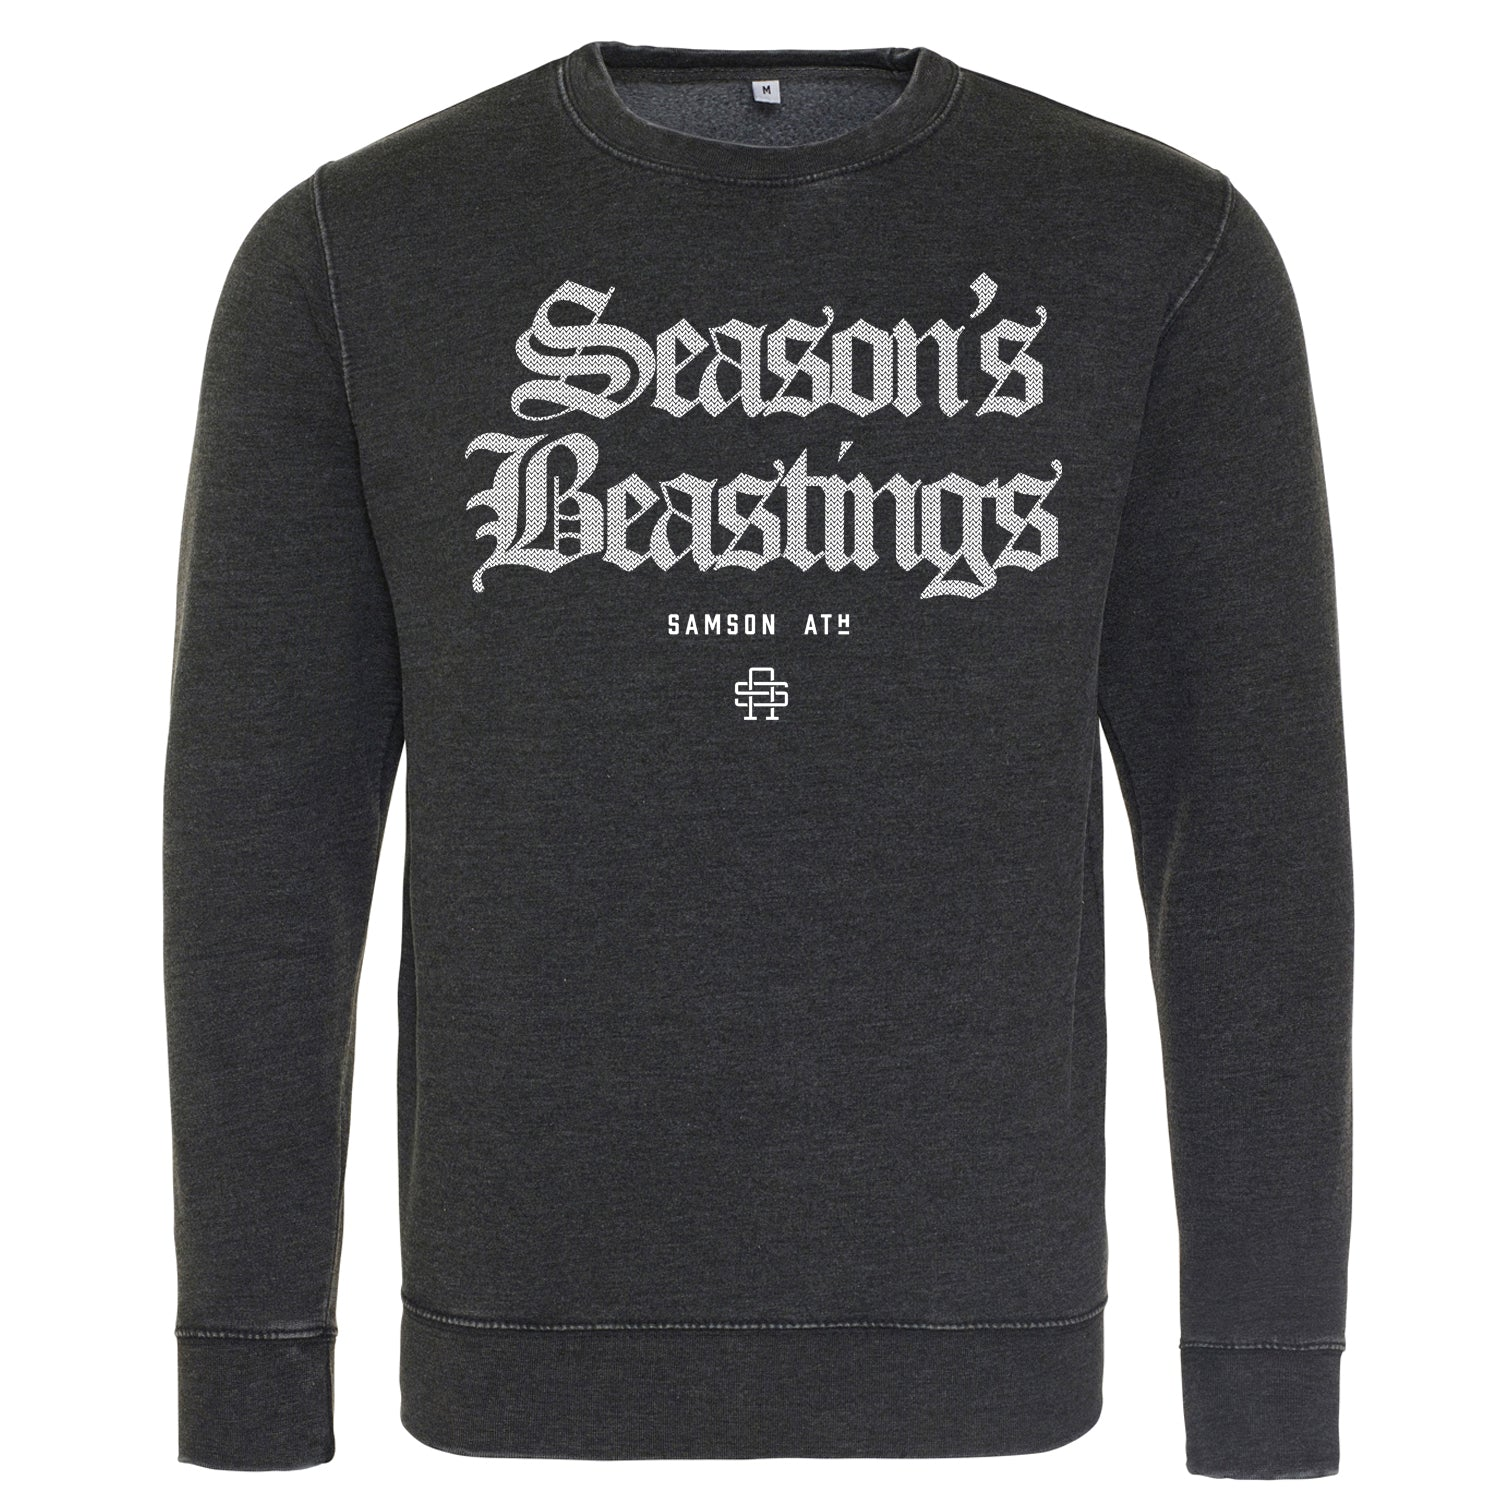 Season's Beastings - Christmas Sweatshirt